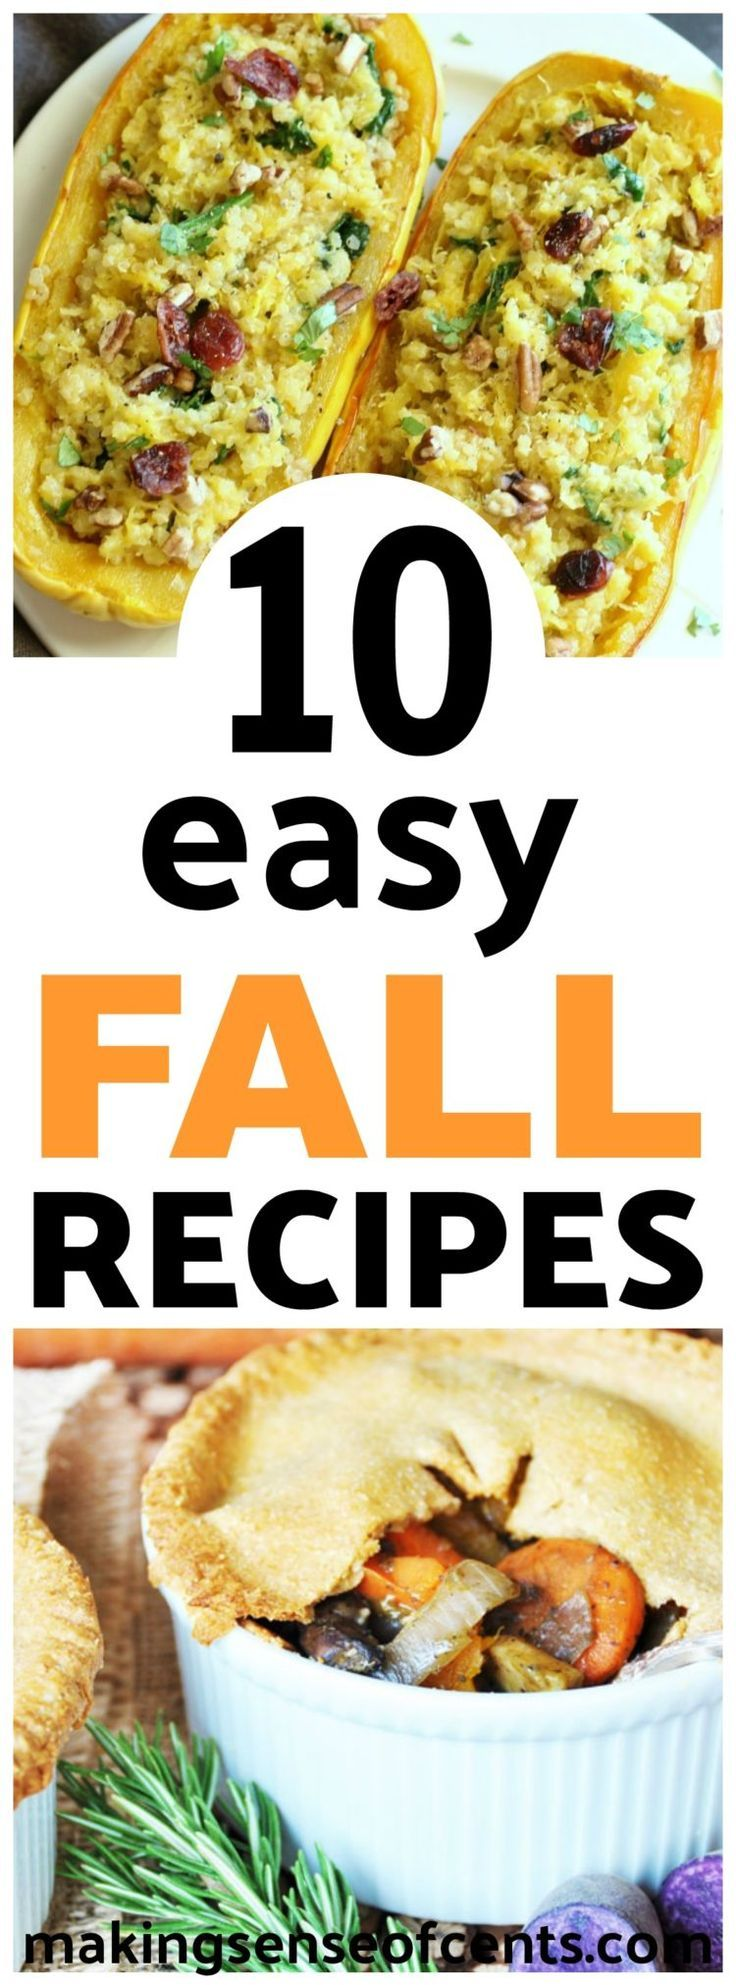 10 Easy Fall Recipes - Best Fall Dinner Ideas For Your Meal Plan images